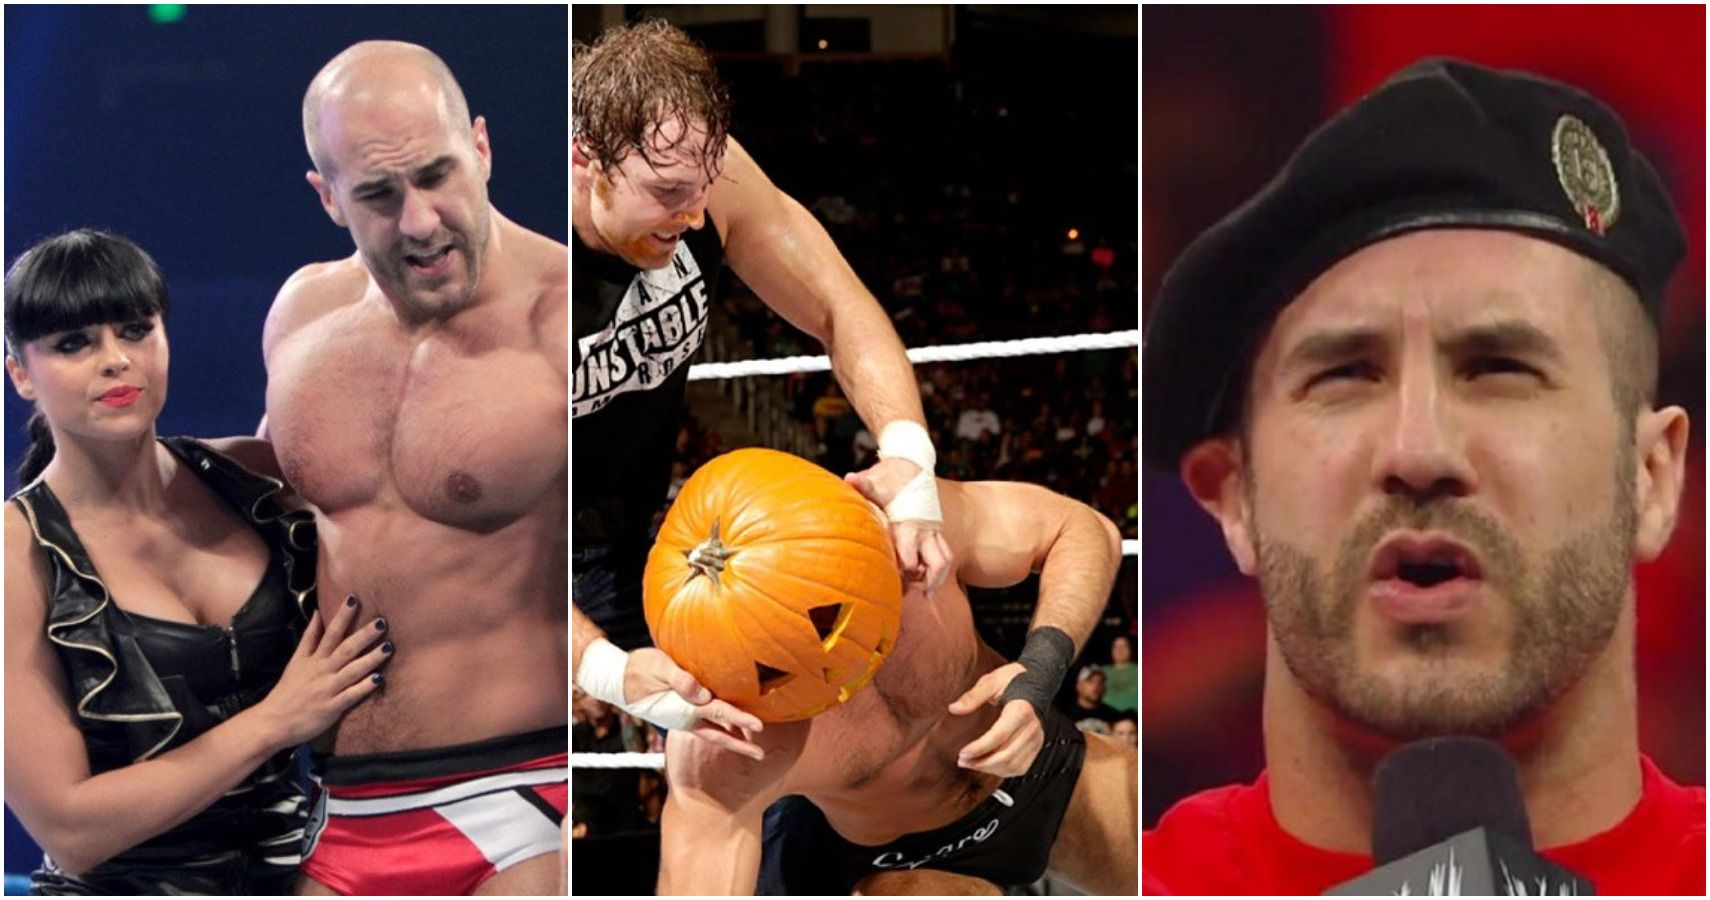 The 10 Most Embarrassing Moments Of Cesaro's Career